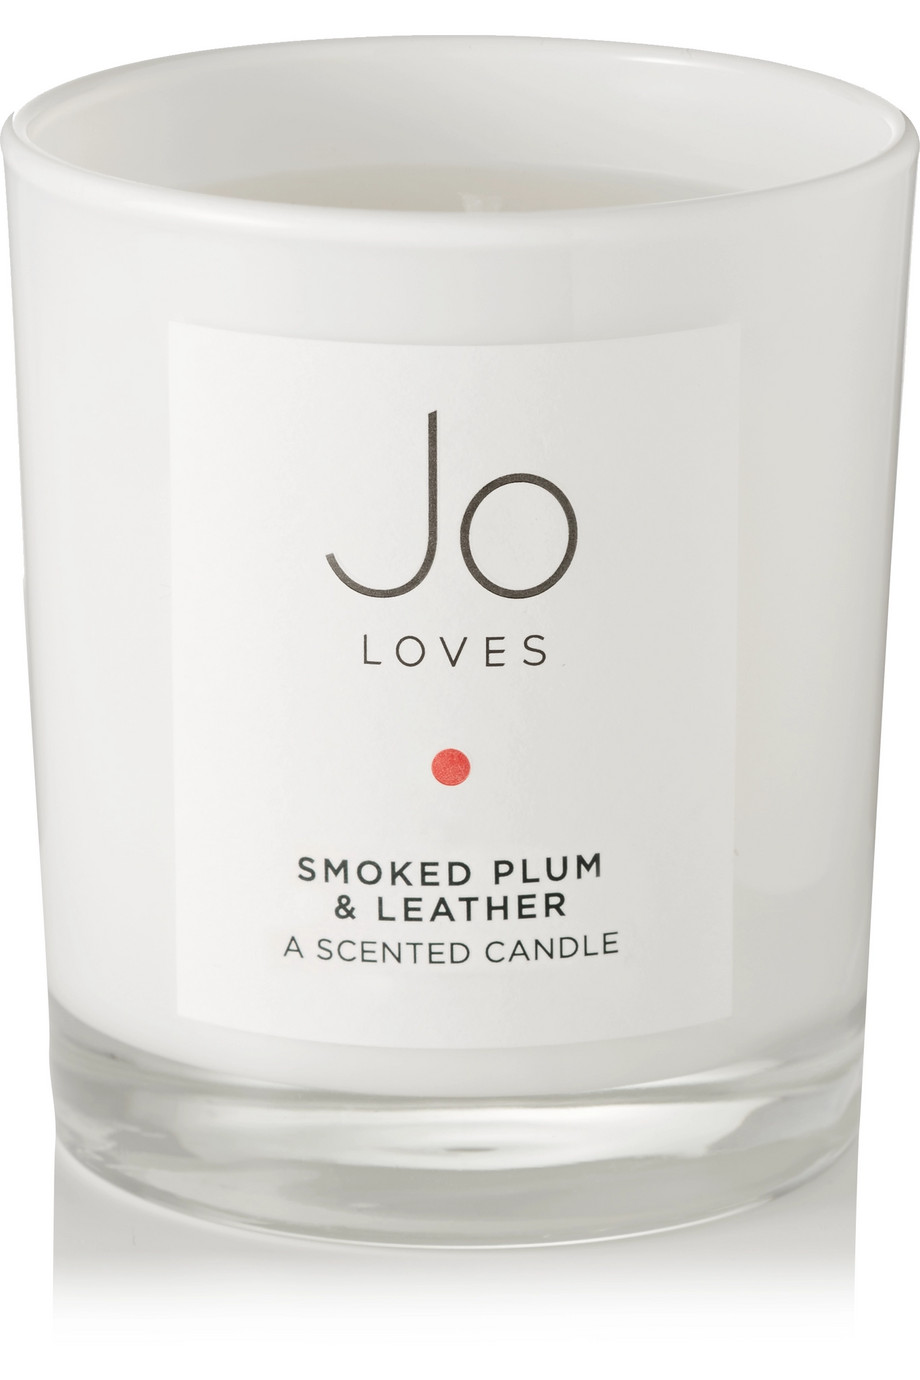 Jo Loves Smoked Plum & Leather scented candle, 185g